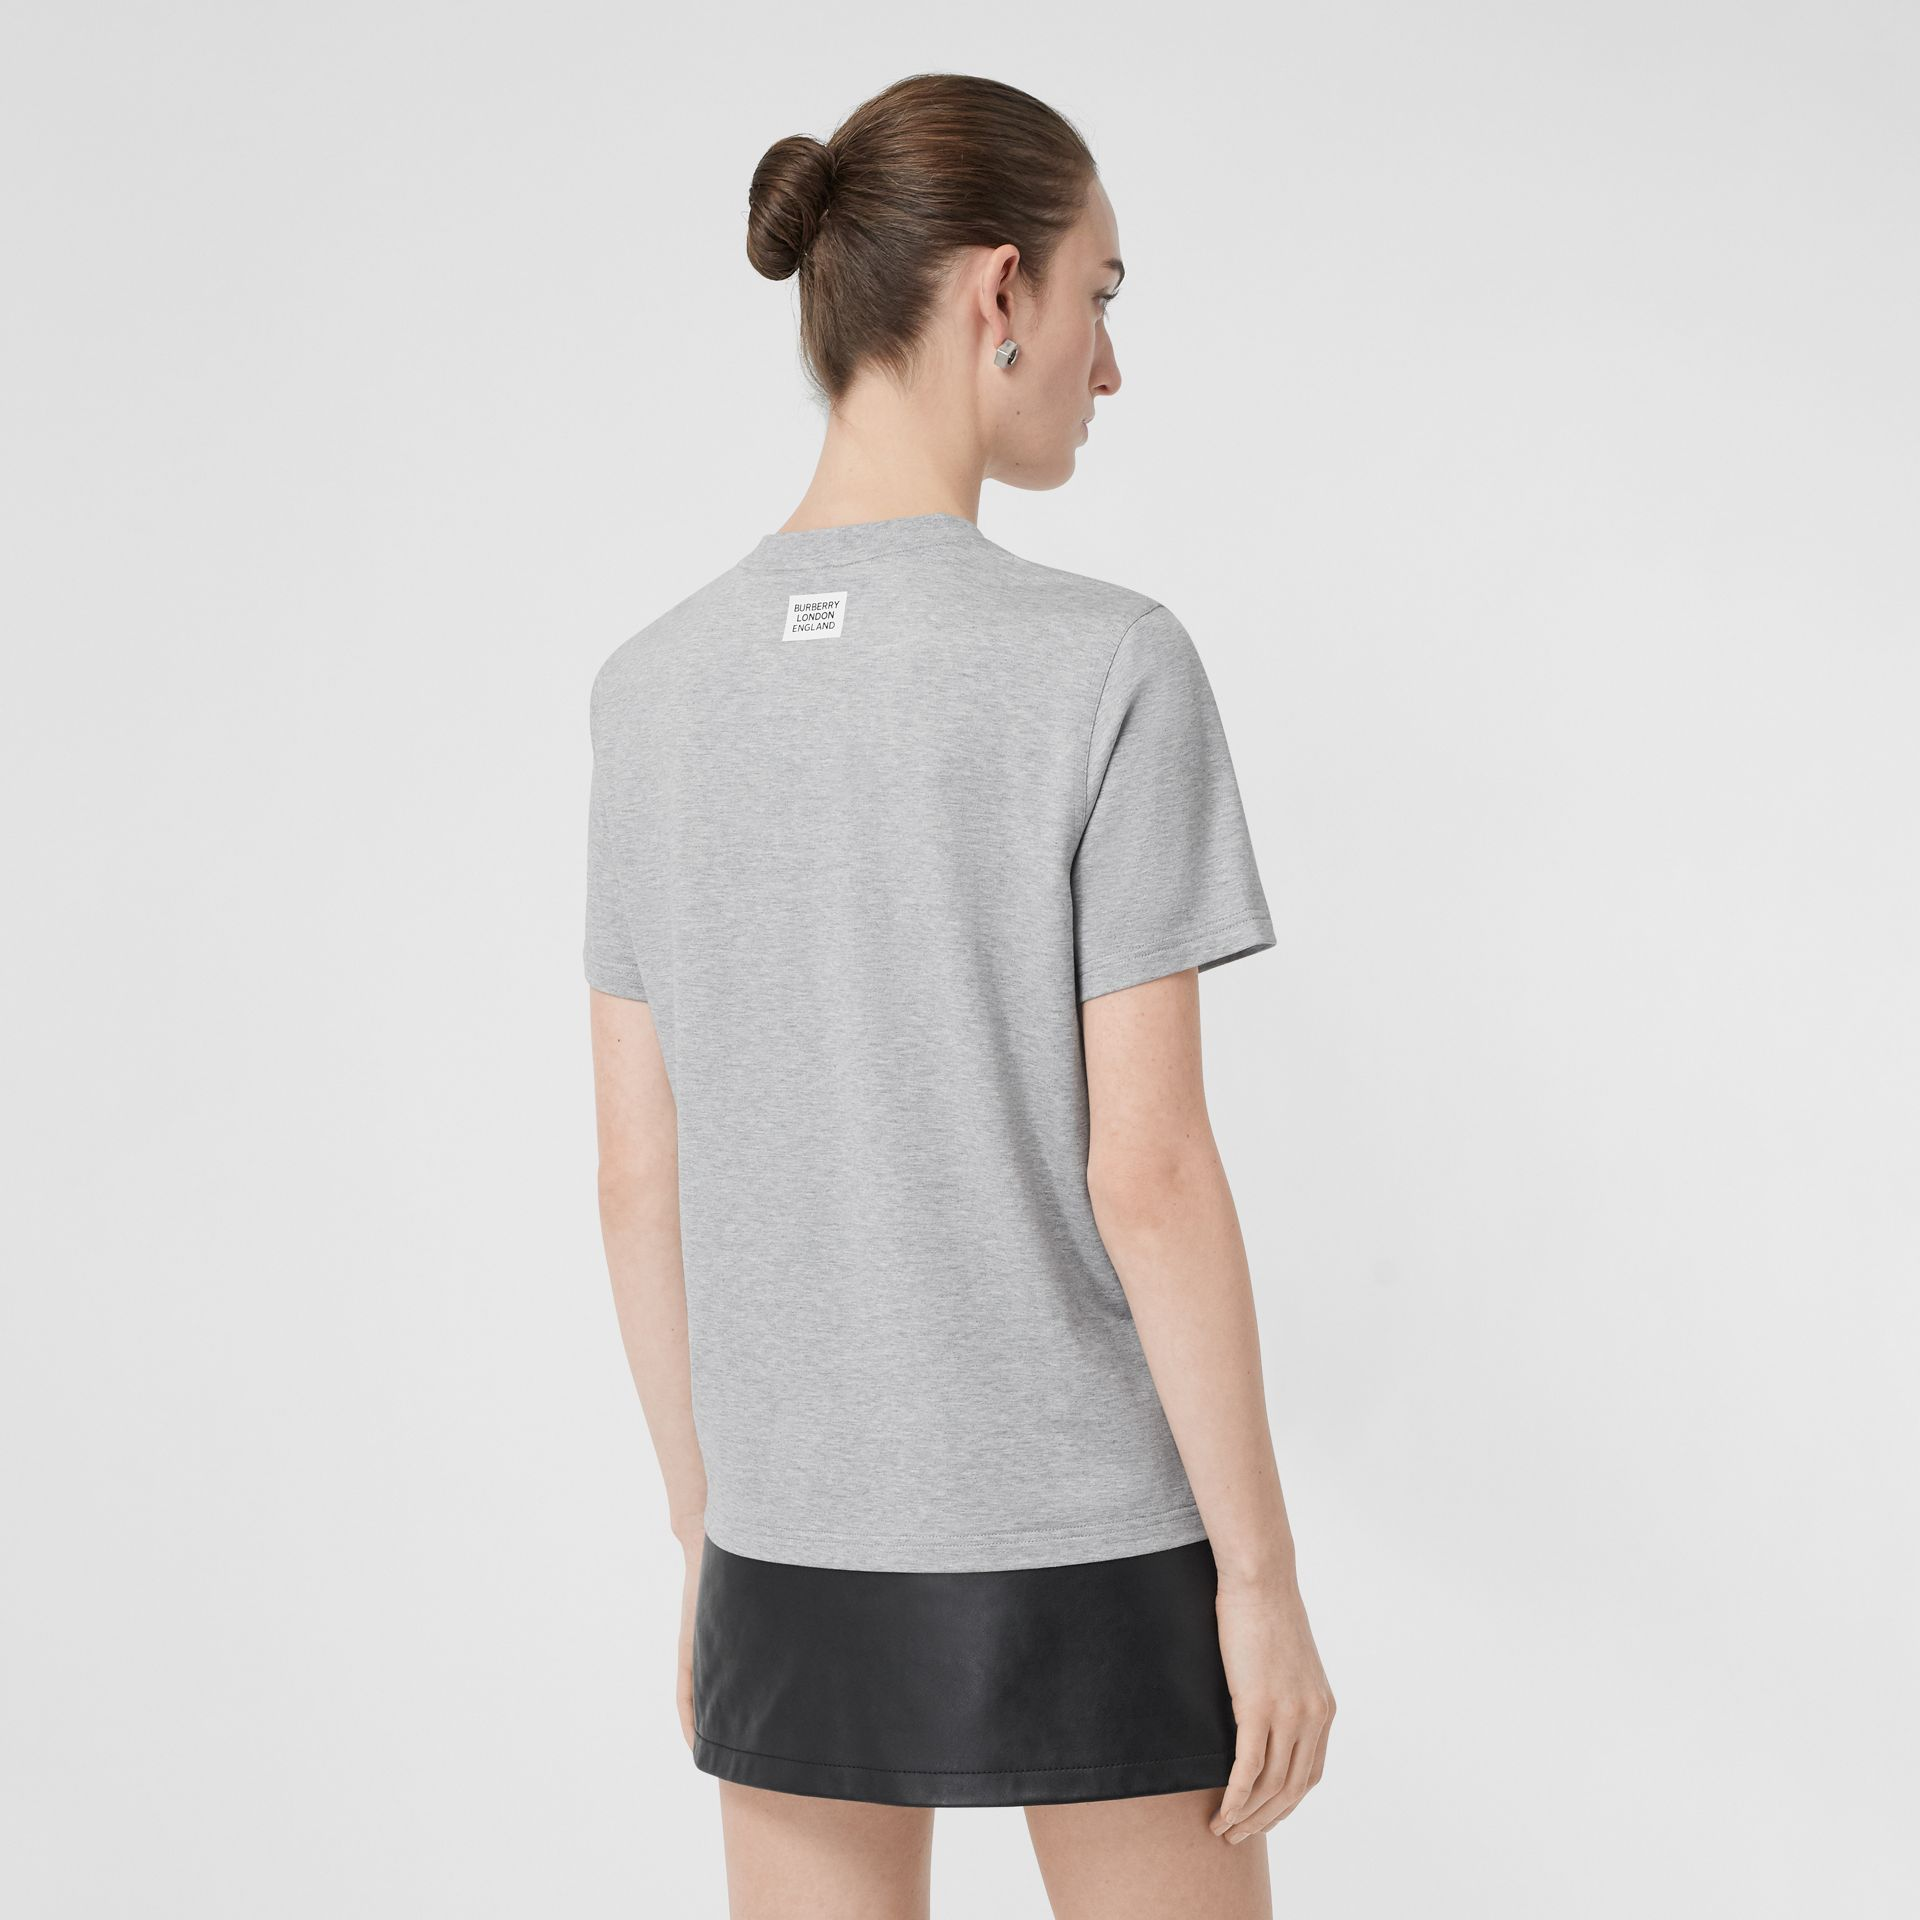 Montage Print Cotton T-shirt in Pale Grey Melange - Women | Burberry Canada - gallery image 2